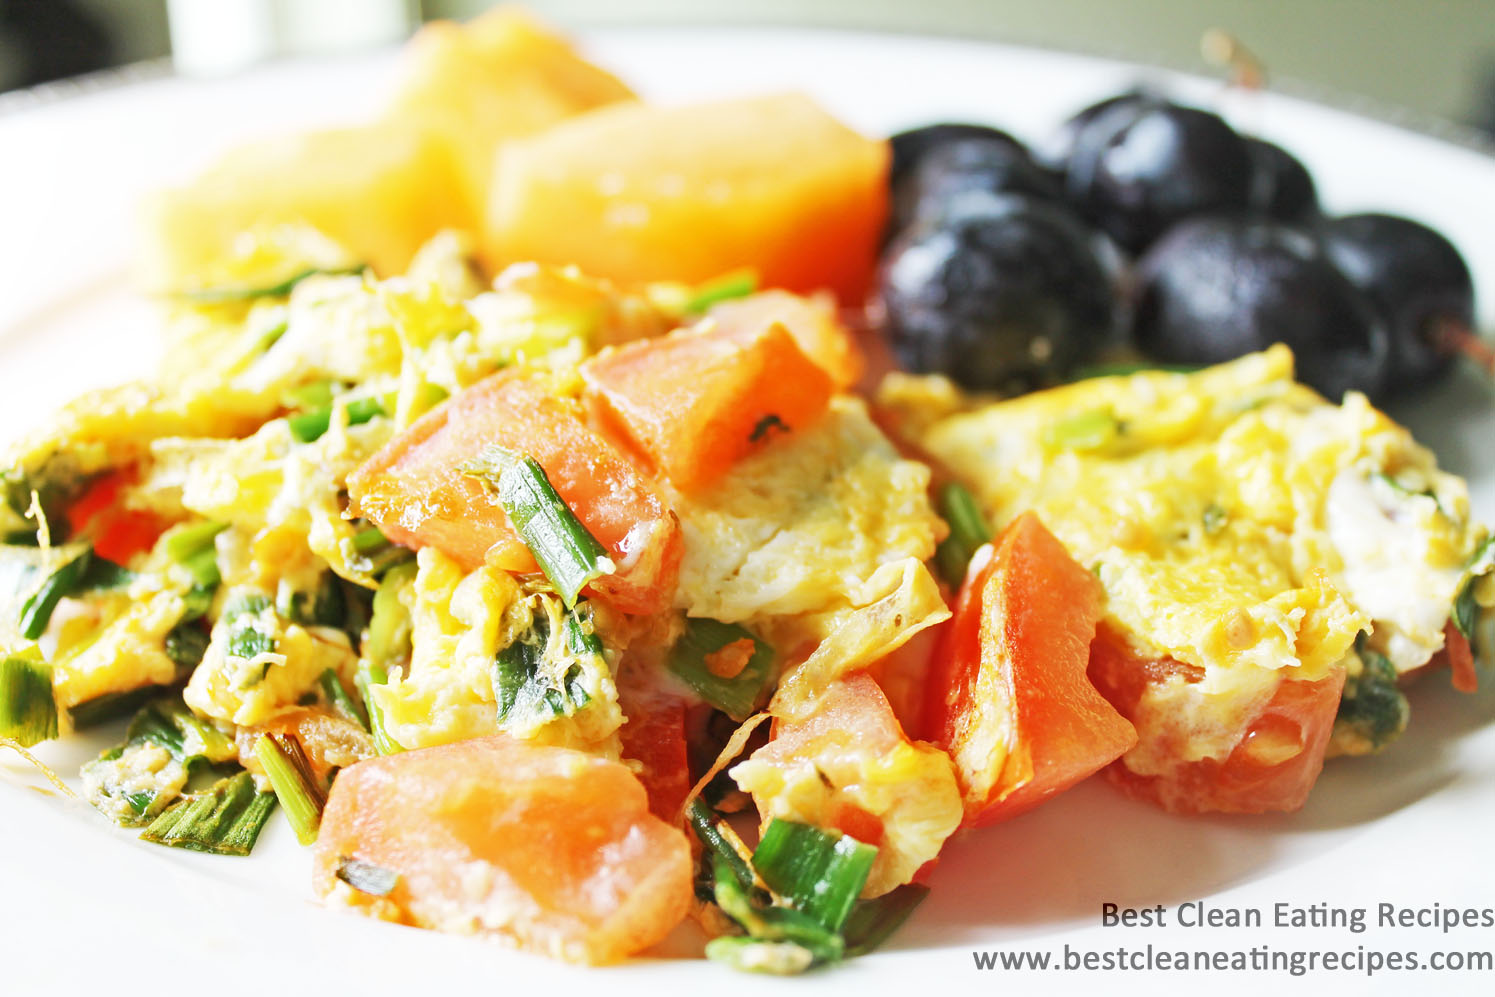 Clean Eating Recipe – Tomato and Green Onion Scrambled Eggs